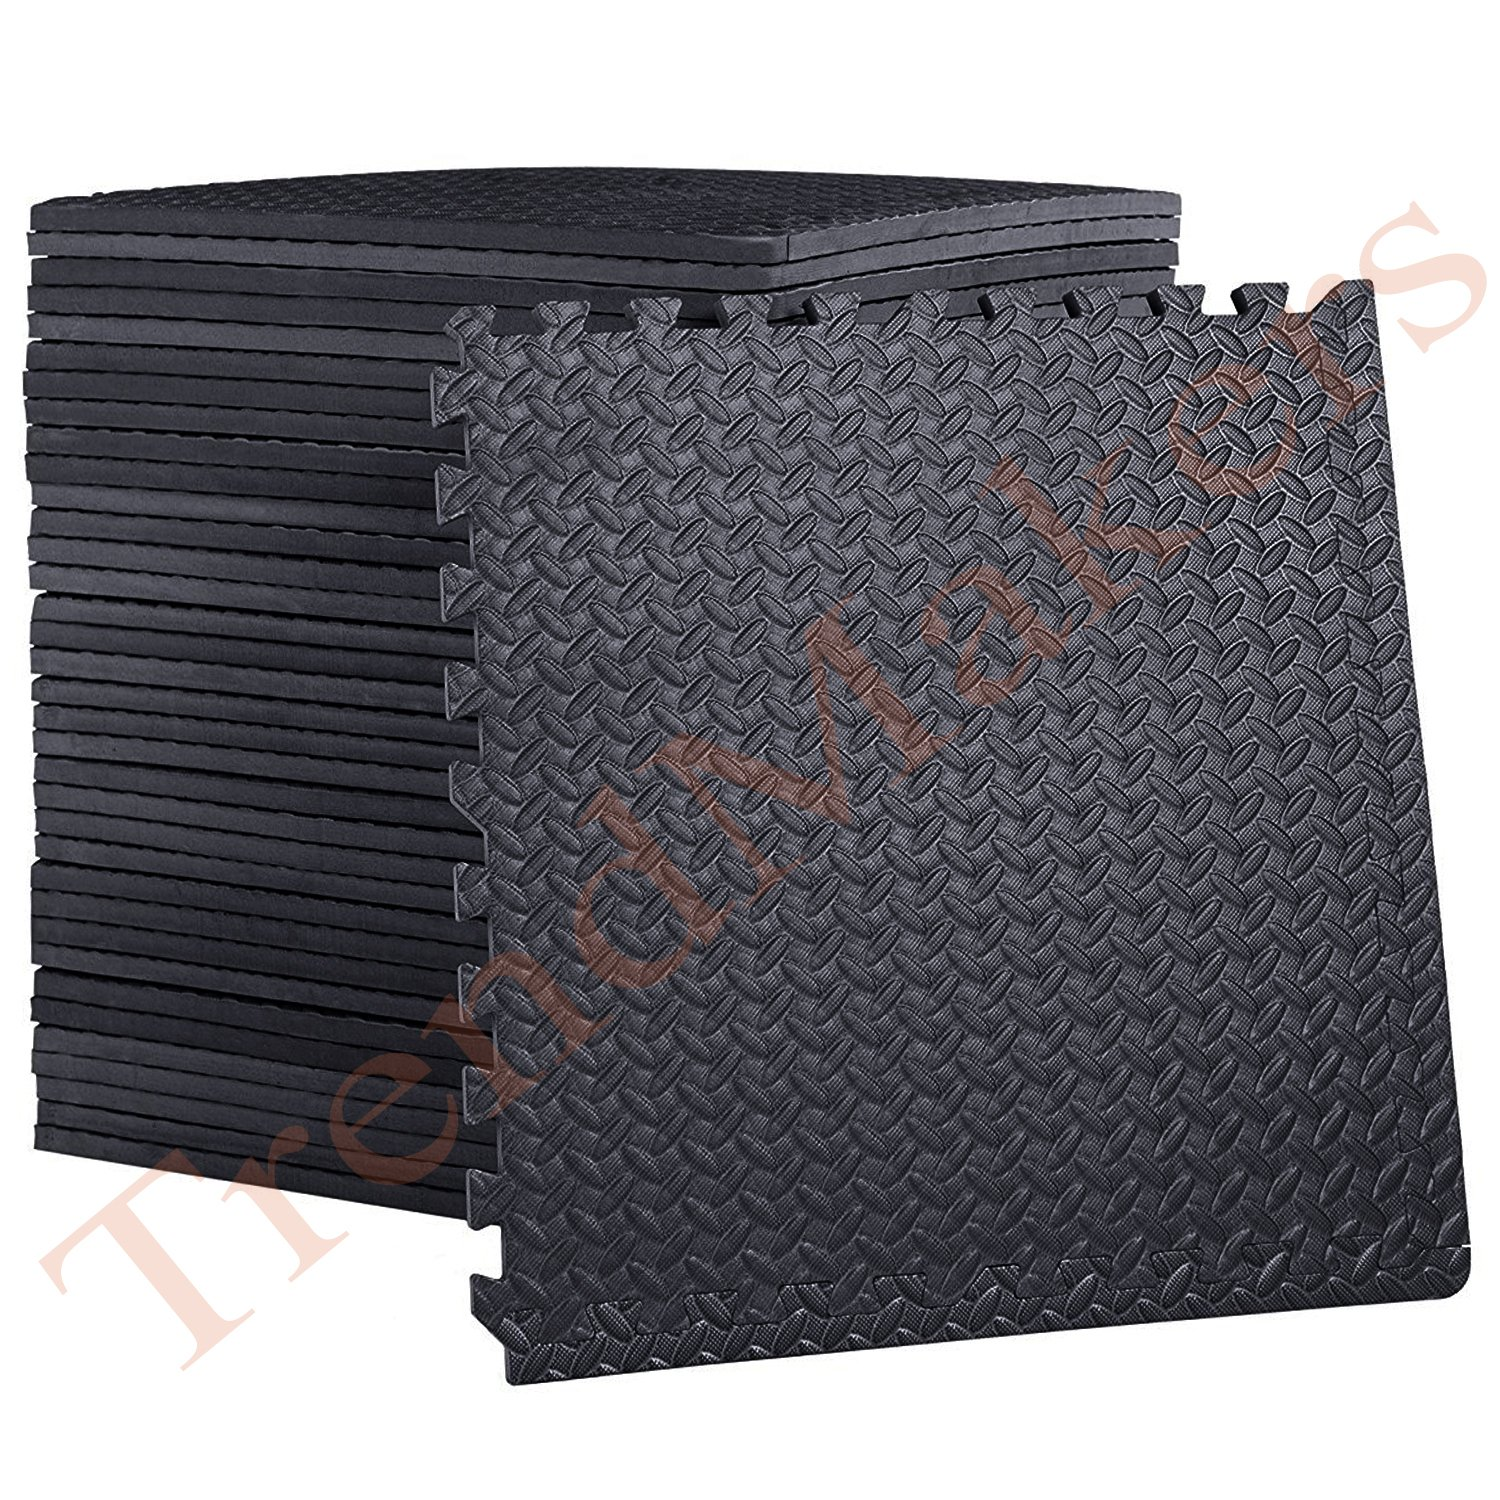 TrendMakers® 32 Sq.Ft (8 Tiles ) BLACK EVA Interlocking Gymnastic Foam Mats Yoga Exercise Garage Floor Protection Playroom Anti Fatigue Rubber Cushion for Workouts - Leaf Pattern - 60 x 60 x 1cm